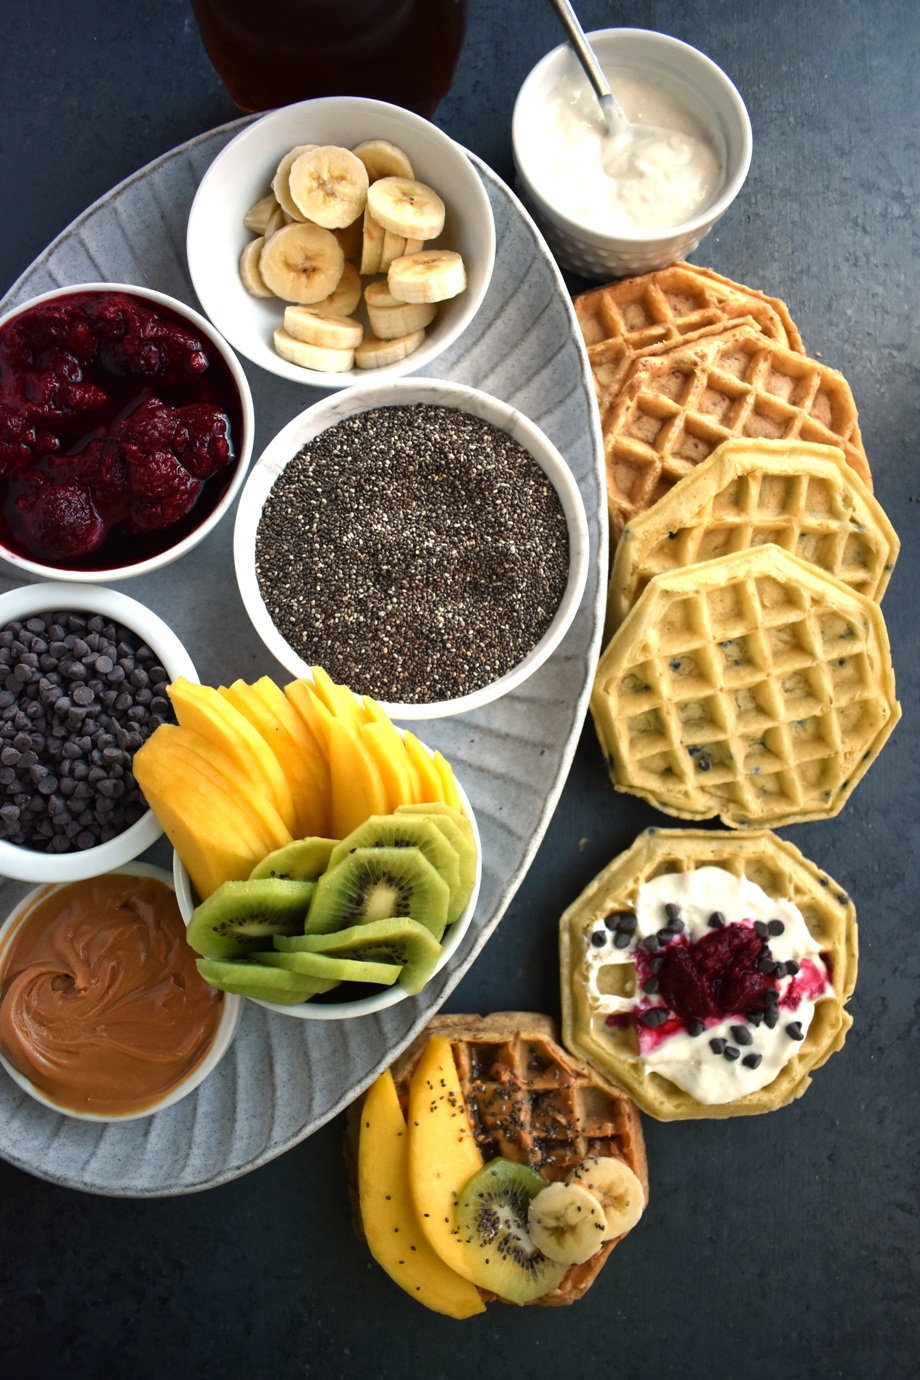 Make Your Own Waffle Bar features tons of fun toppings including fresh fruit, nuts, yogurt, raspberry sauce, maple syrup, peanut butter, chocolate chips and more! www.nutritionistreviews.com